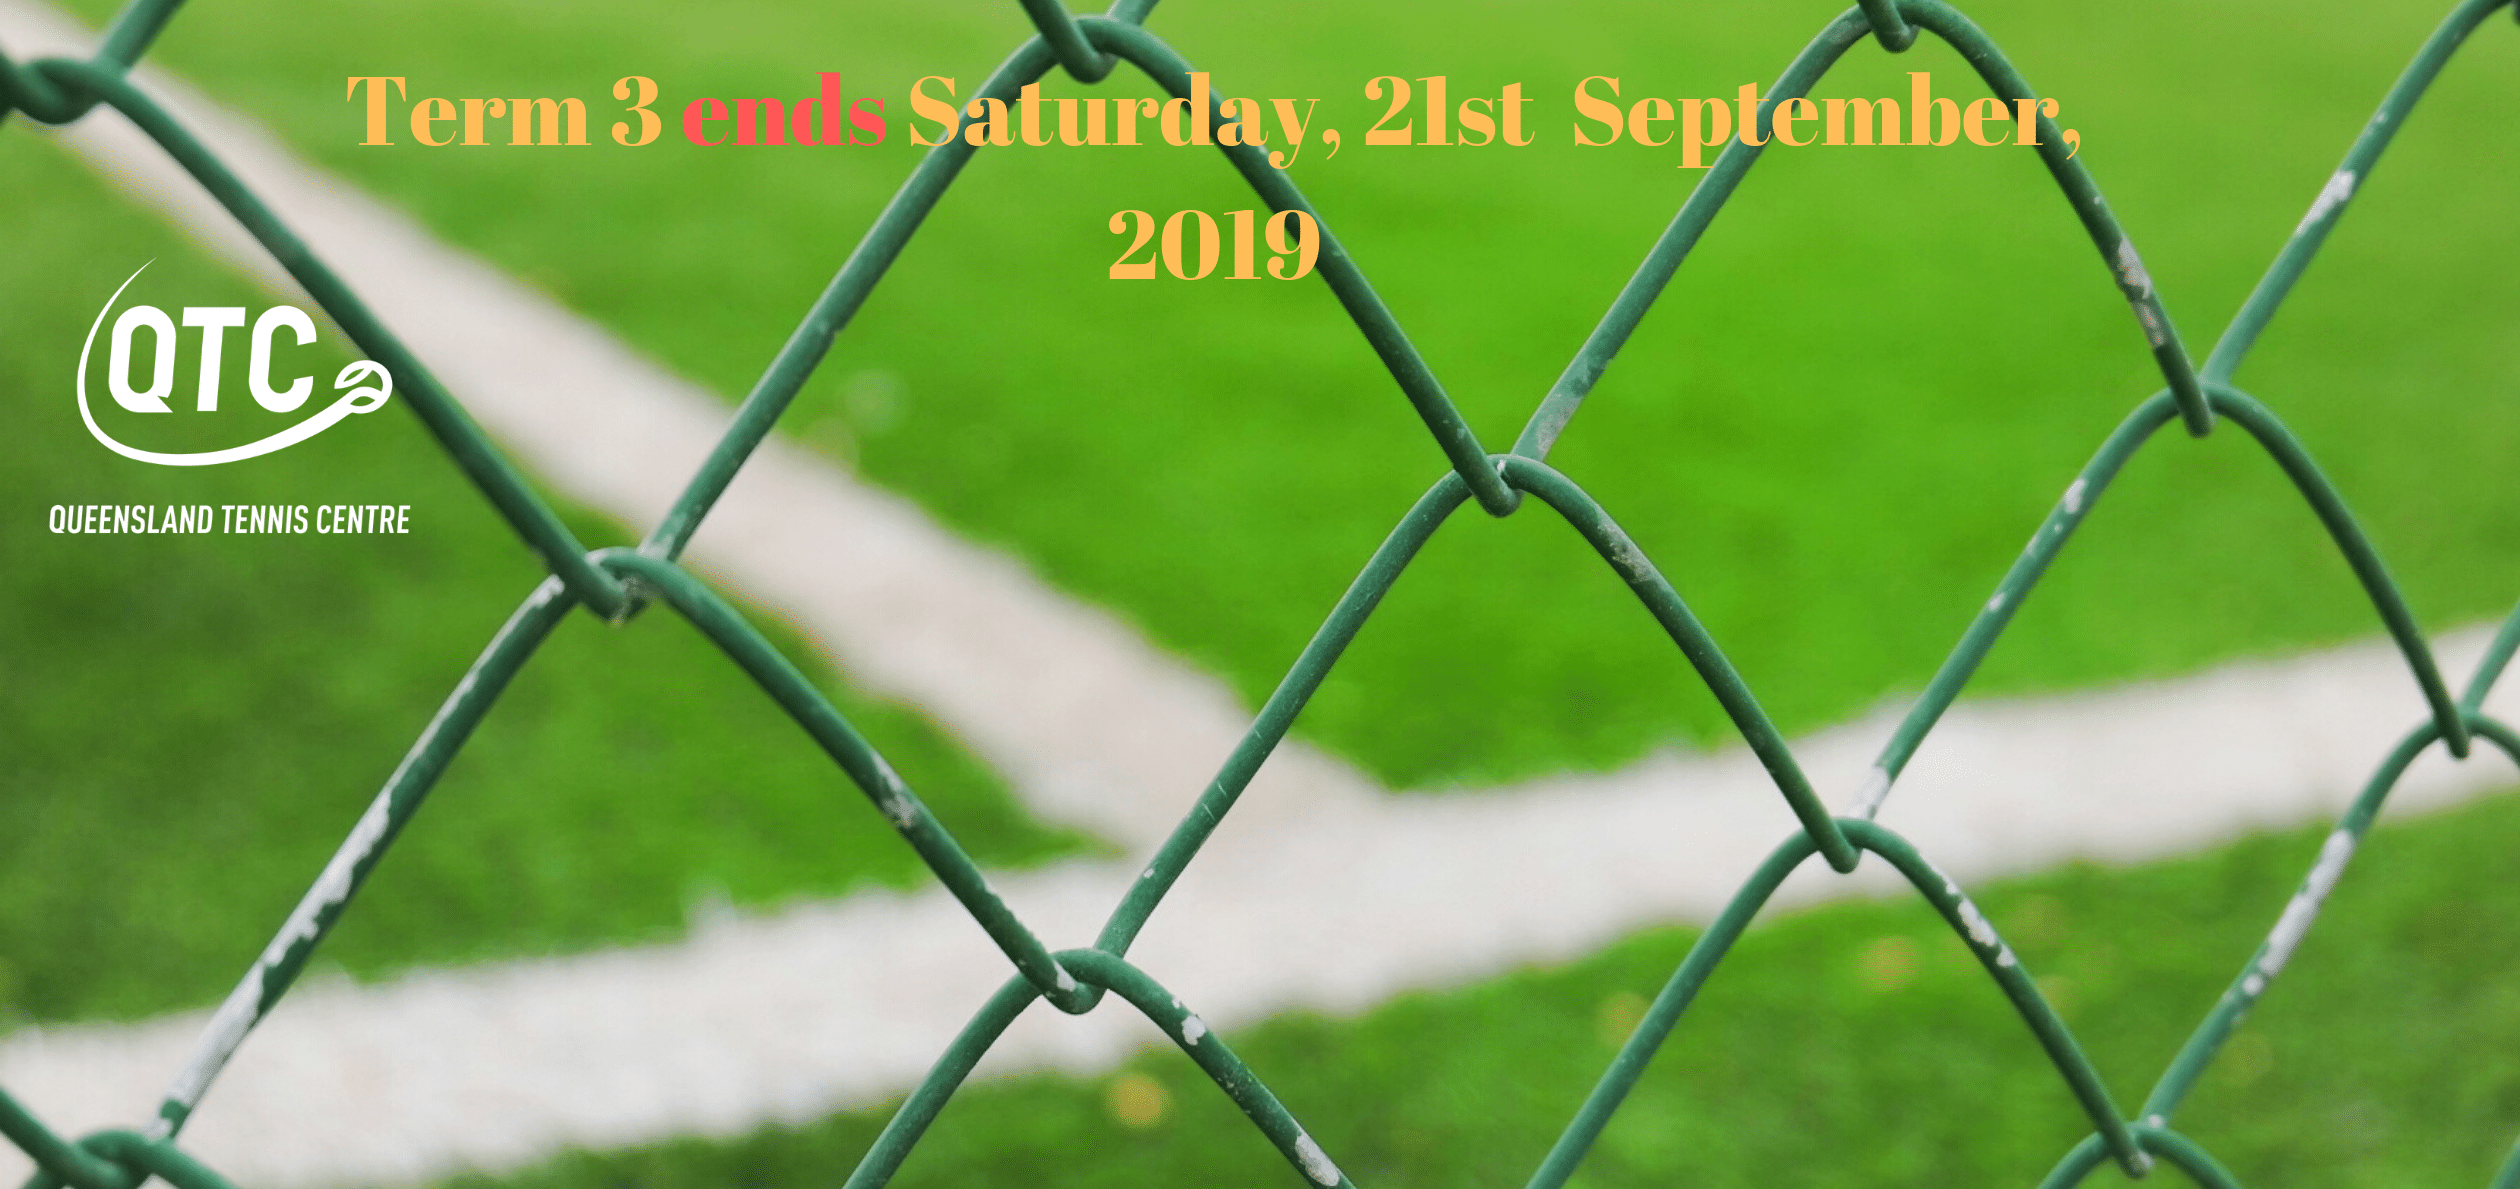 Term 3 ends Saturday, 21st September, 2019